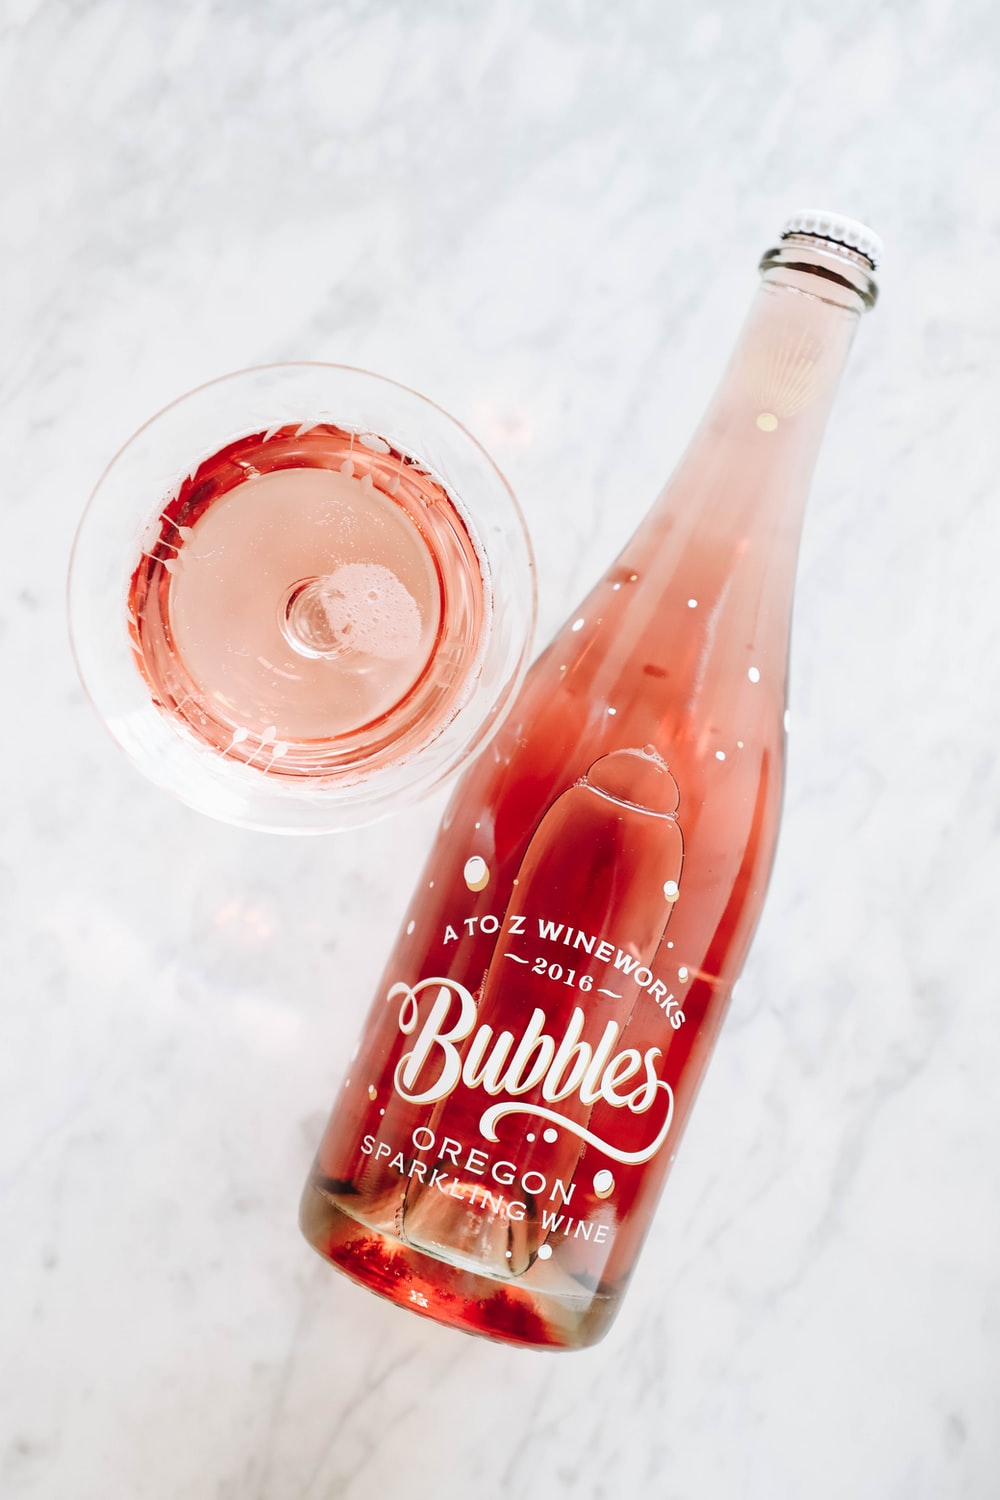 Bubbles bottle and cup